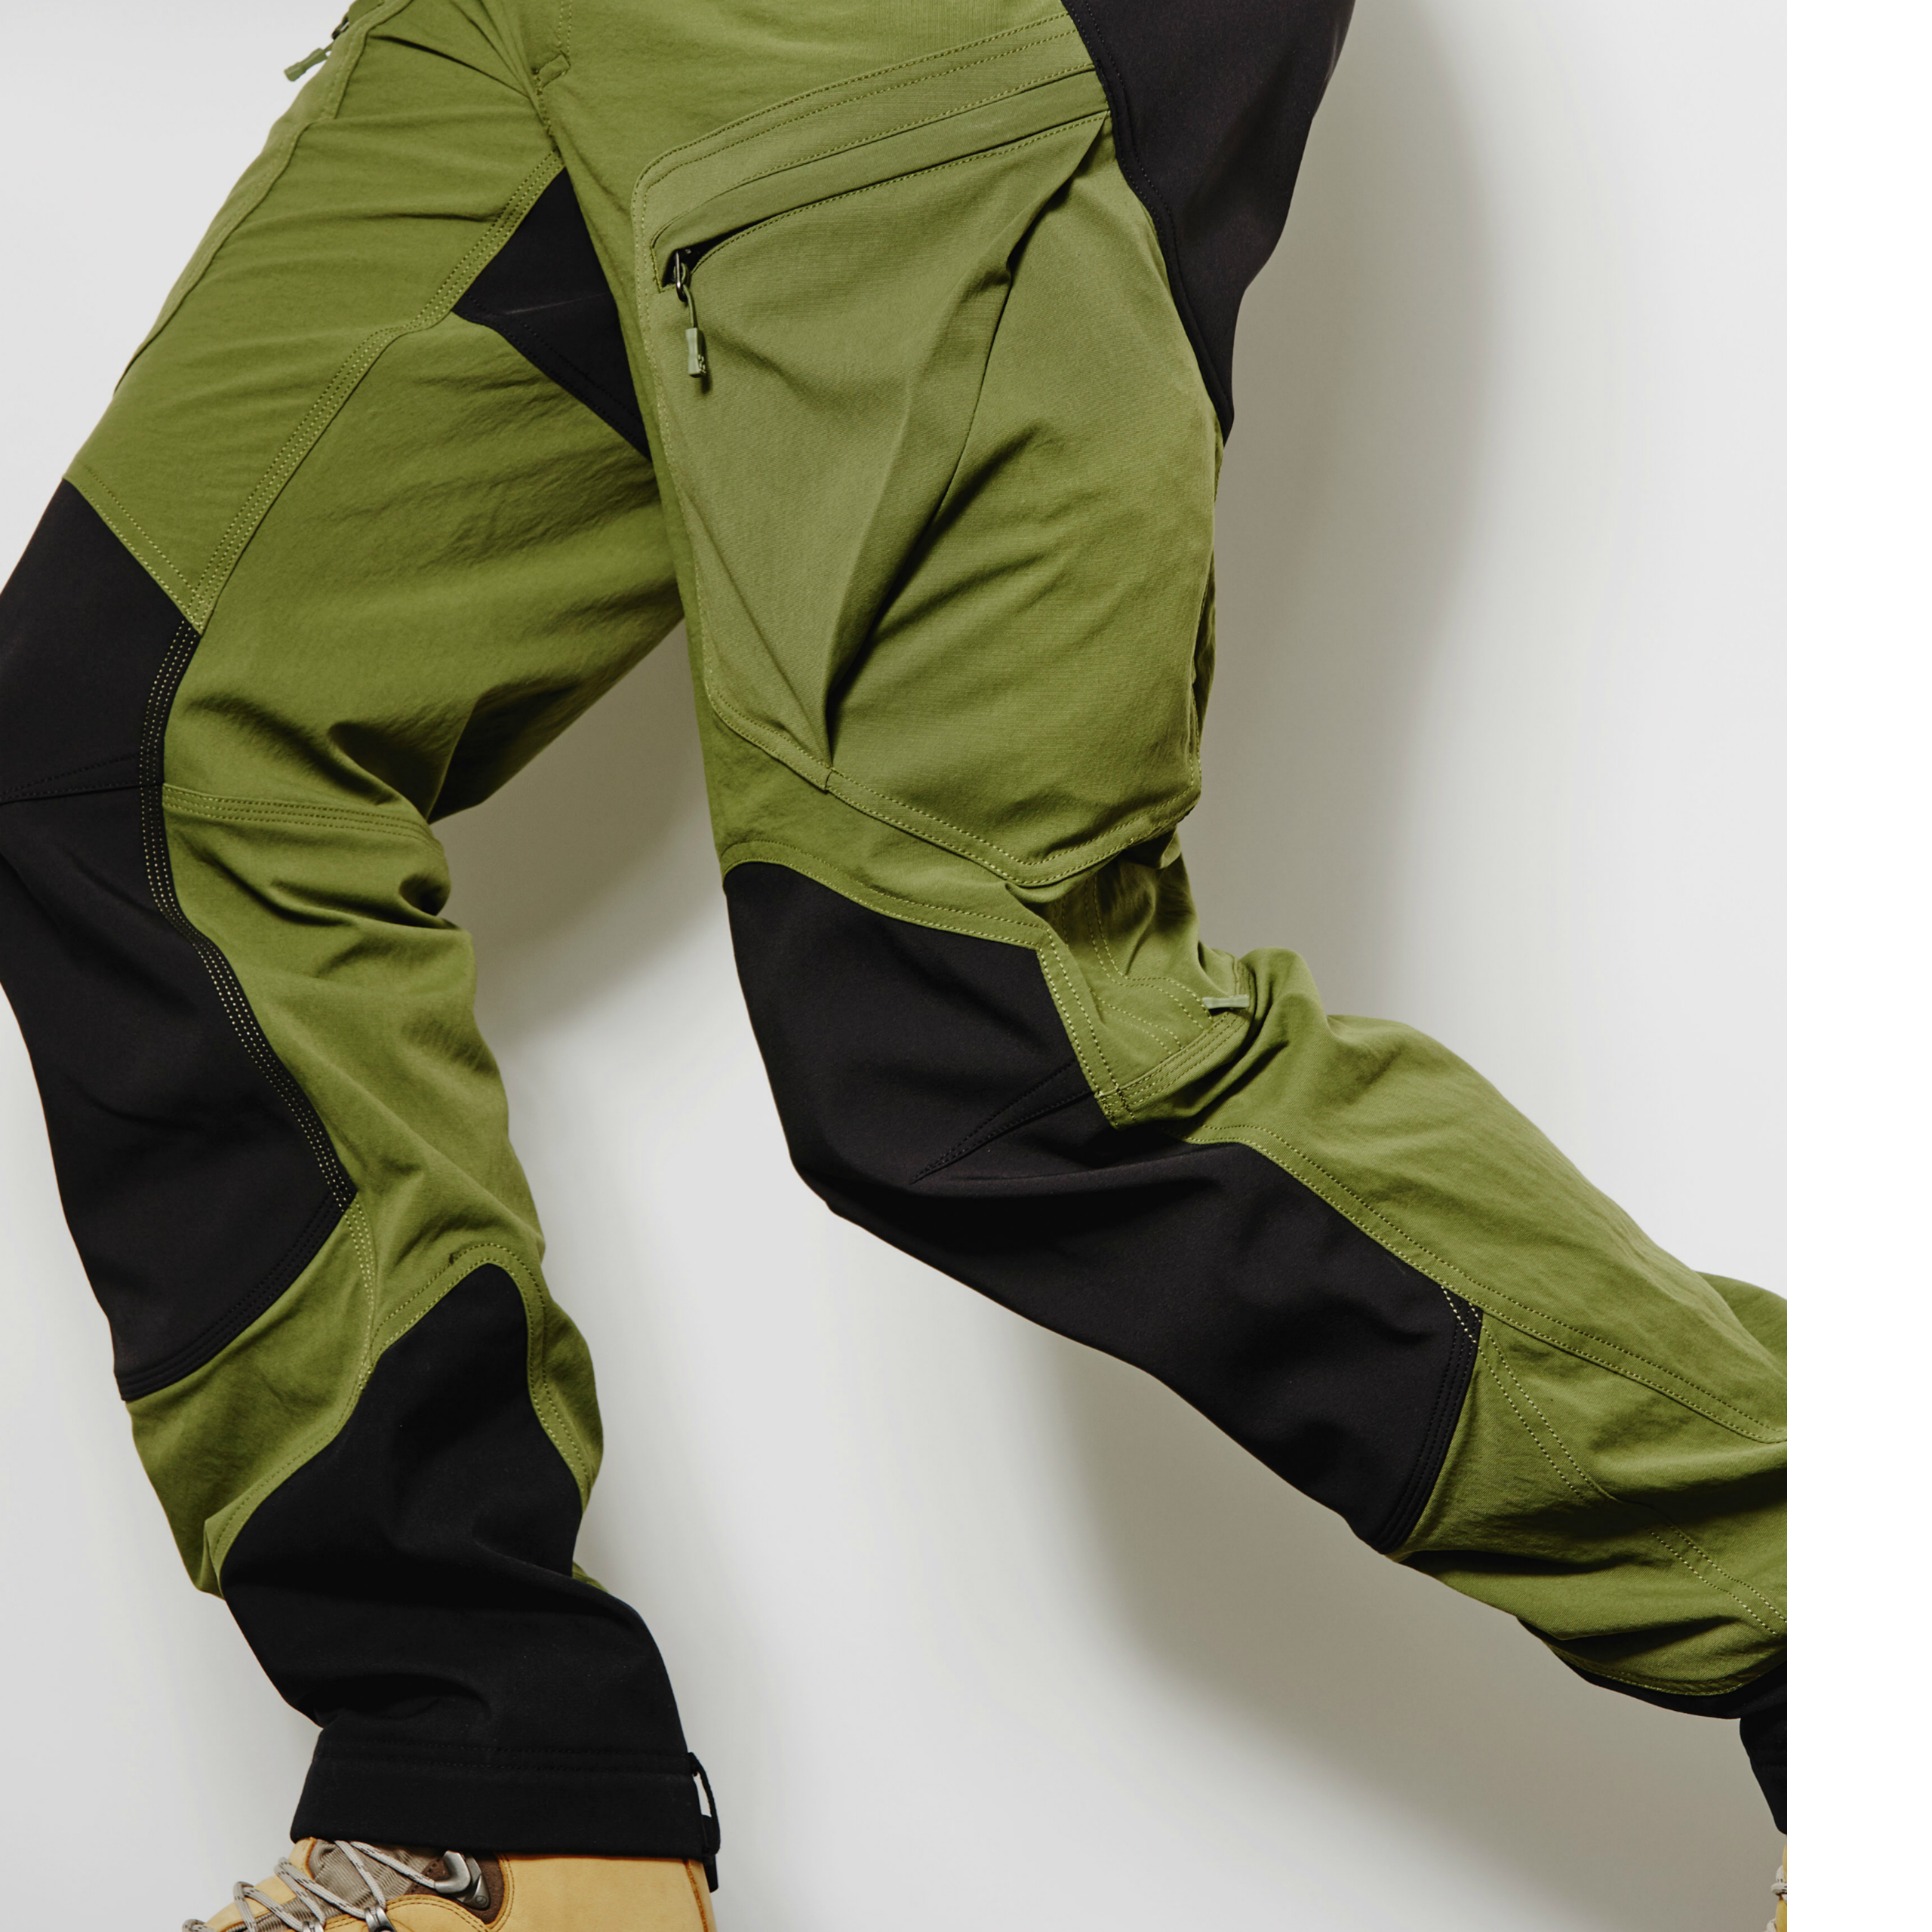 Rugged Ii Mountain Pant Men Celana